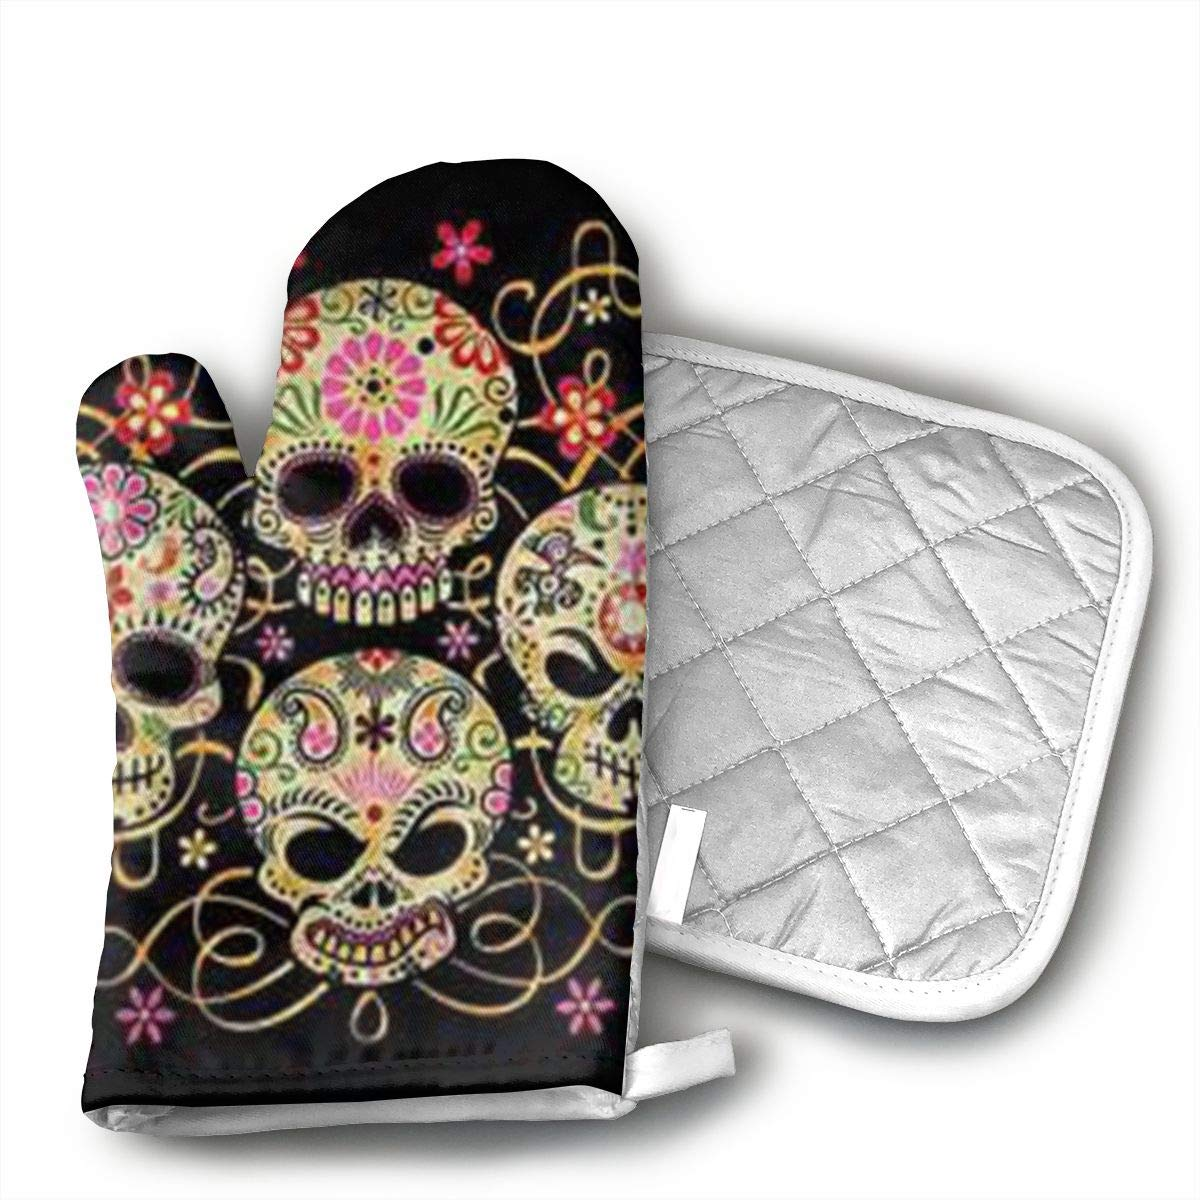 CHWEYAQ Day of The Dead Sugar Skull Oven Mitts and Pot Holders Set of for Kitchen Set with Cotton Non-Slip Grip